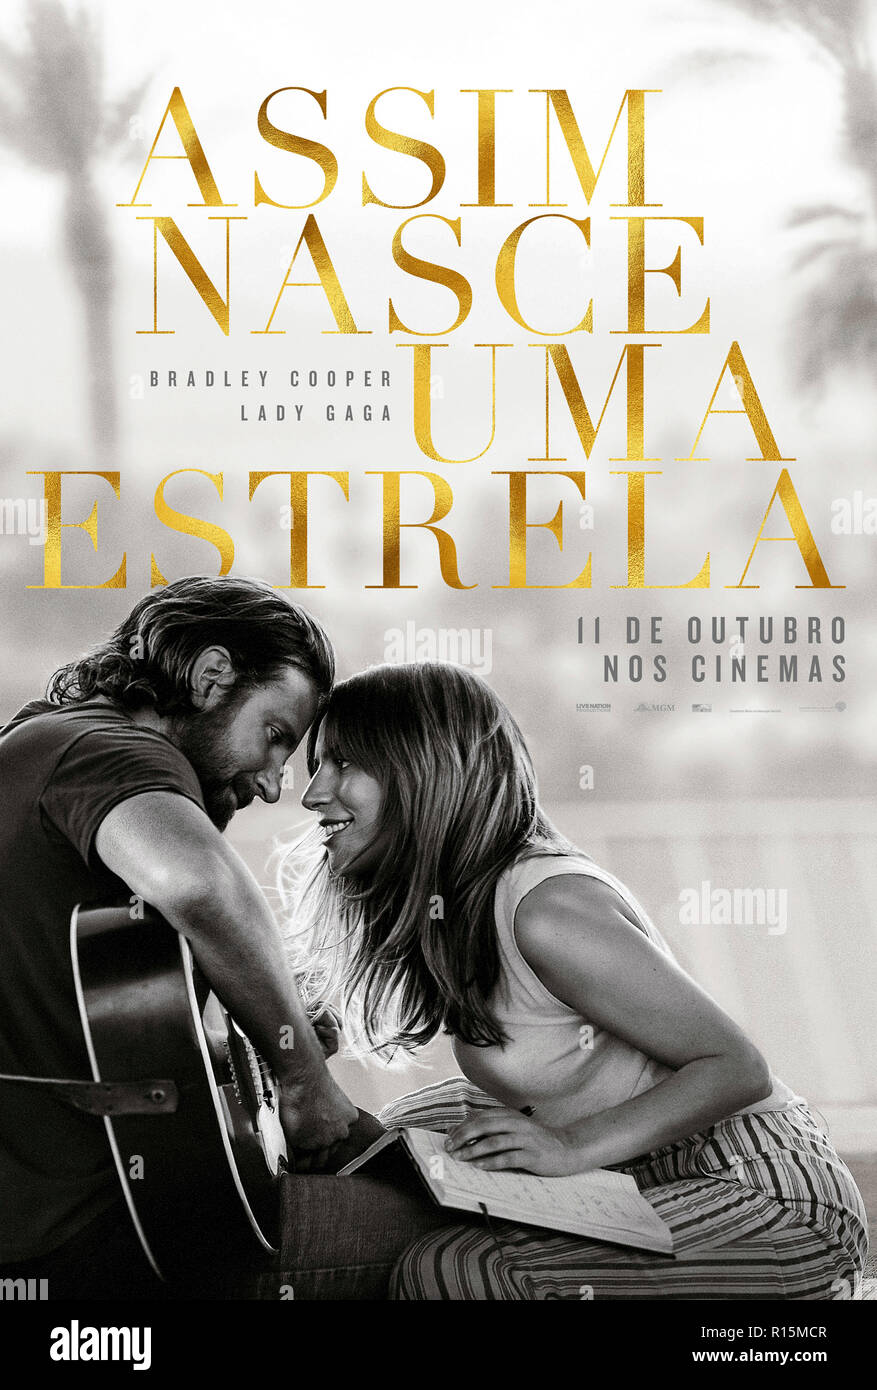 Prod DB © Warner Bros. - Gerber Pictures - Joint Effort - Malpaso Productions - Thunder Road Pictures / DR A STAR IS BORN de Bradley Cooper 2018 USA t - Stock Image